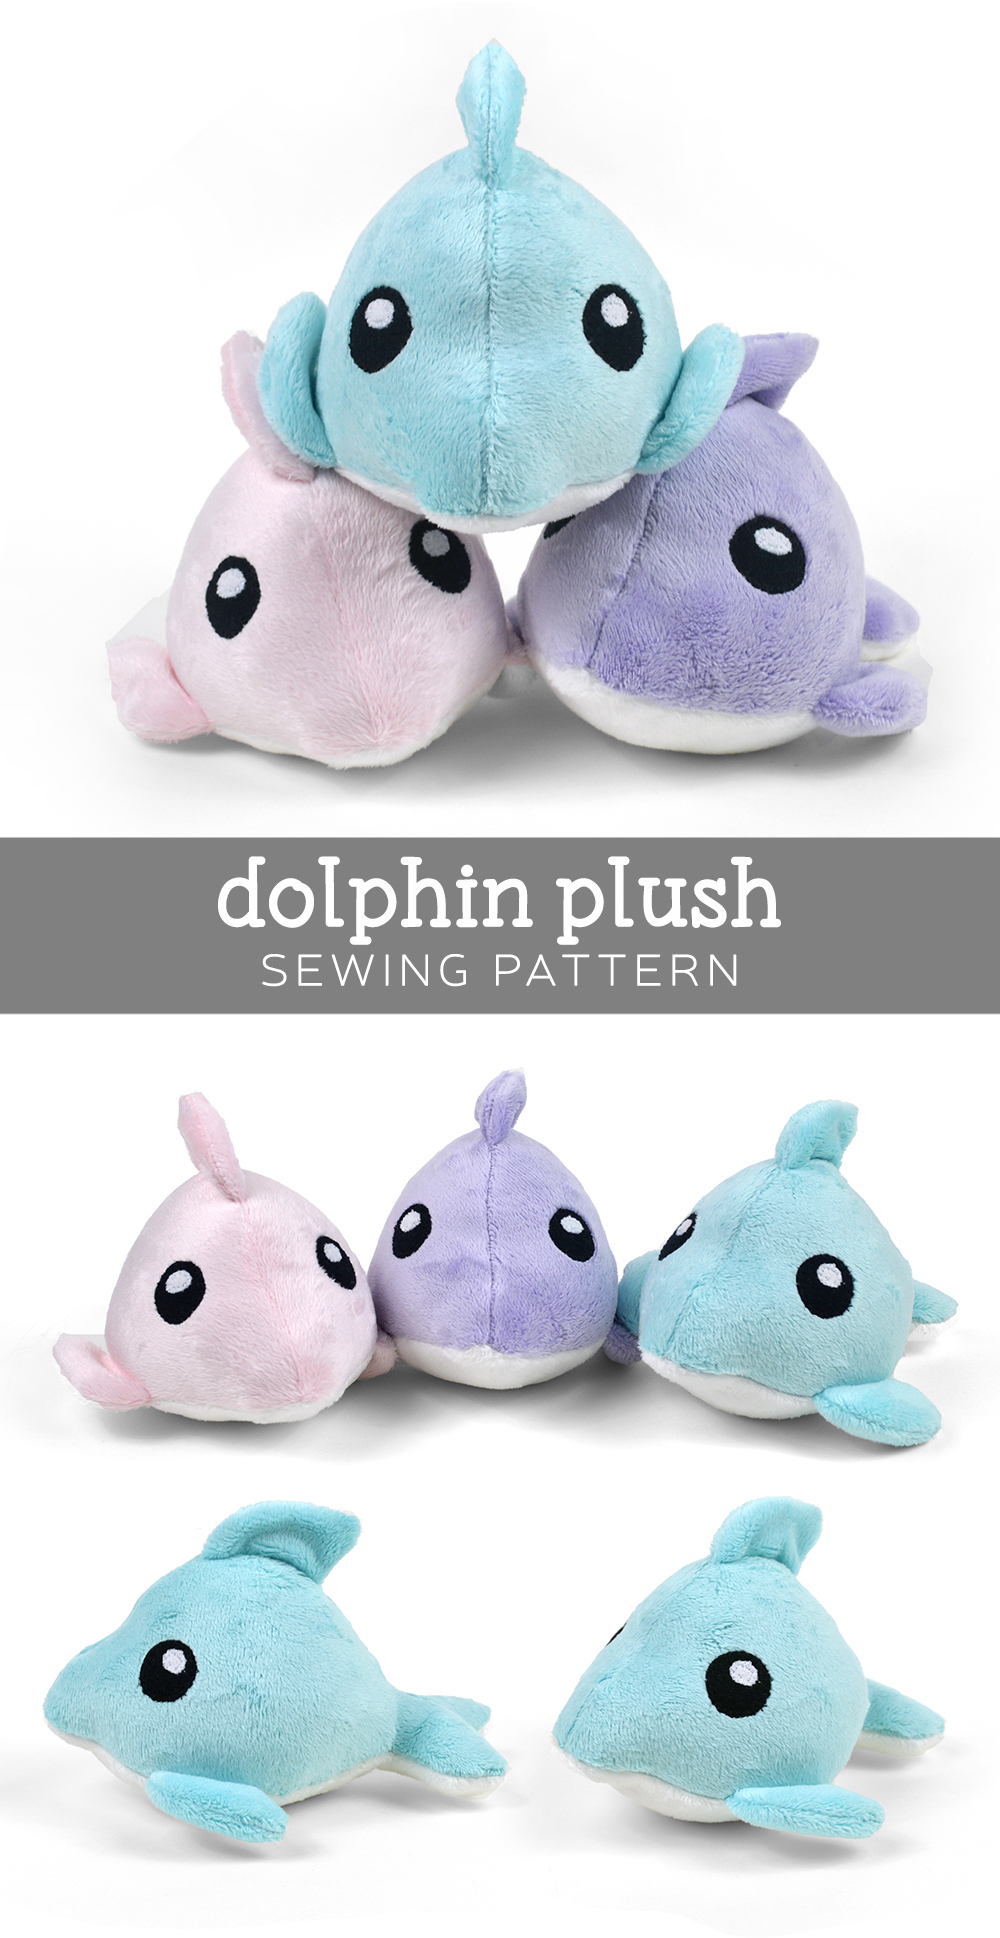 Free pattern friday dolphin plush choly knight i kept coming across awesome mysterious animals with strange colors like the maltese tiger the albino sewer gator or in this case pink dolphins pronofoot35fo Choice Image